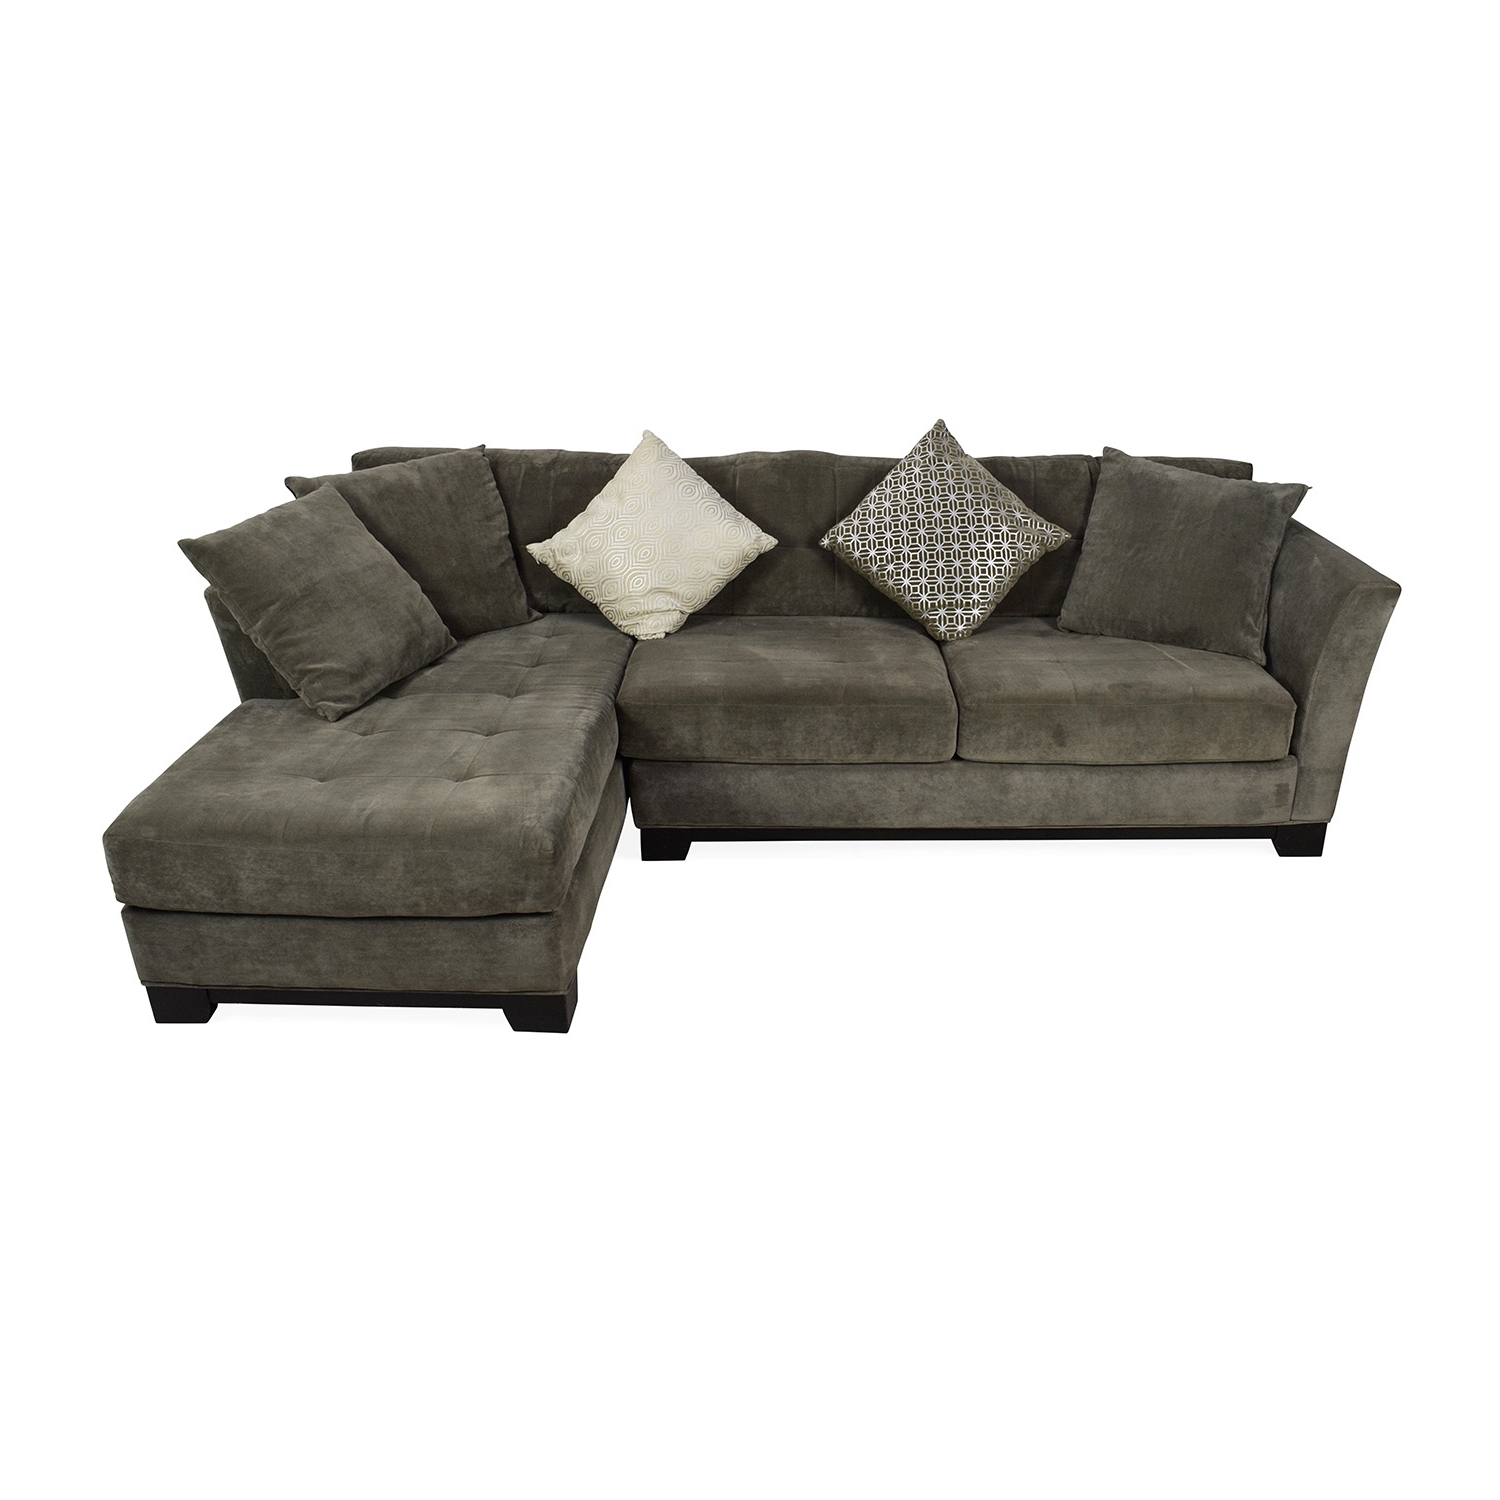 [%50% Off – Macy's Macy's Gray Sectional Couch With Chaise / Sofas With 2019 Macys Sofas|Macys Sofas Throughout Latest 50% Off – Macy's Macy's Gray Sectional Couch With Chaise / Sofas|Most Current Macys Sofas Within 50% Off – Macy's Macy's Gray Sectional Couch With Chaise / Sofas|Well Known 50% Off – Macy's Macy's Gray Sectional Couch With Chaise / Sofas Regarding Macys Sofas%] (View 2 of 20)